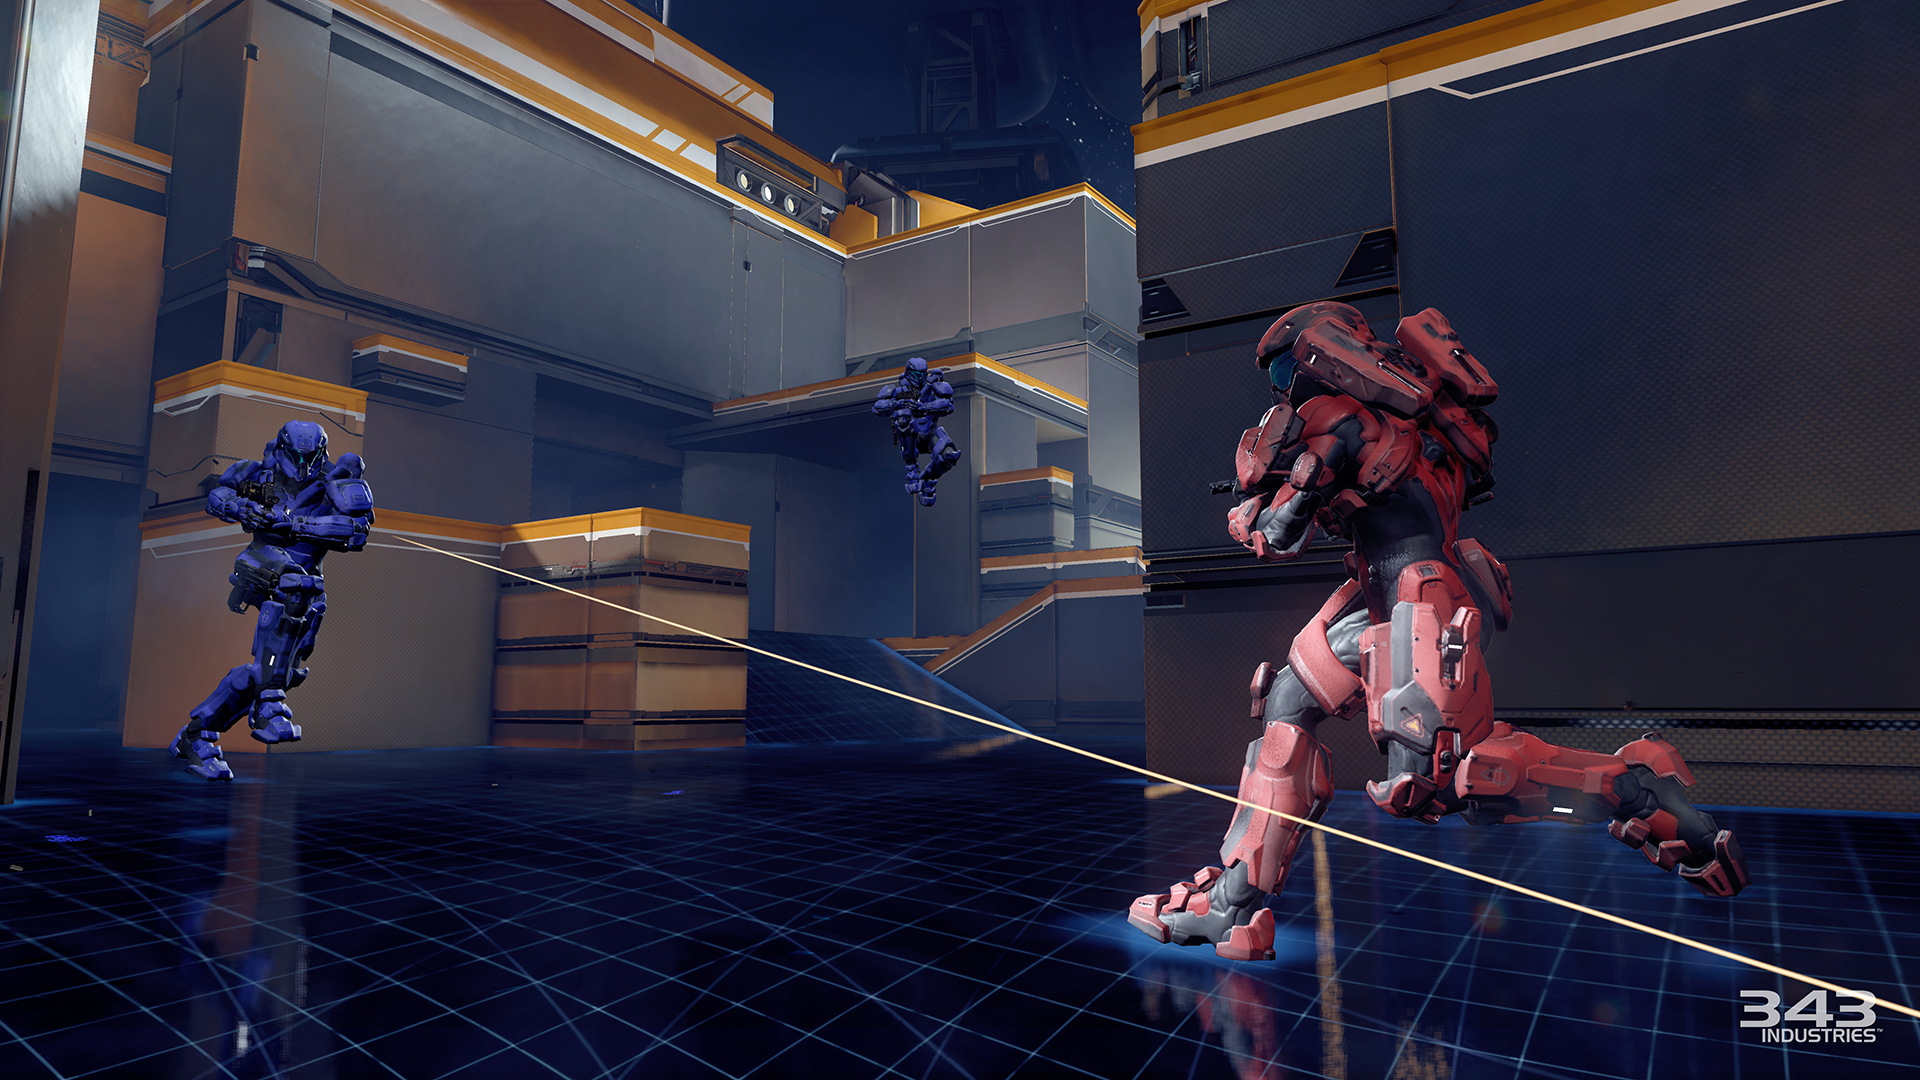 Halo 5: Guardians - 343 tries to recover from Halo 4 - Games